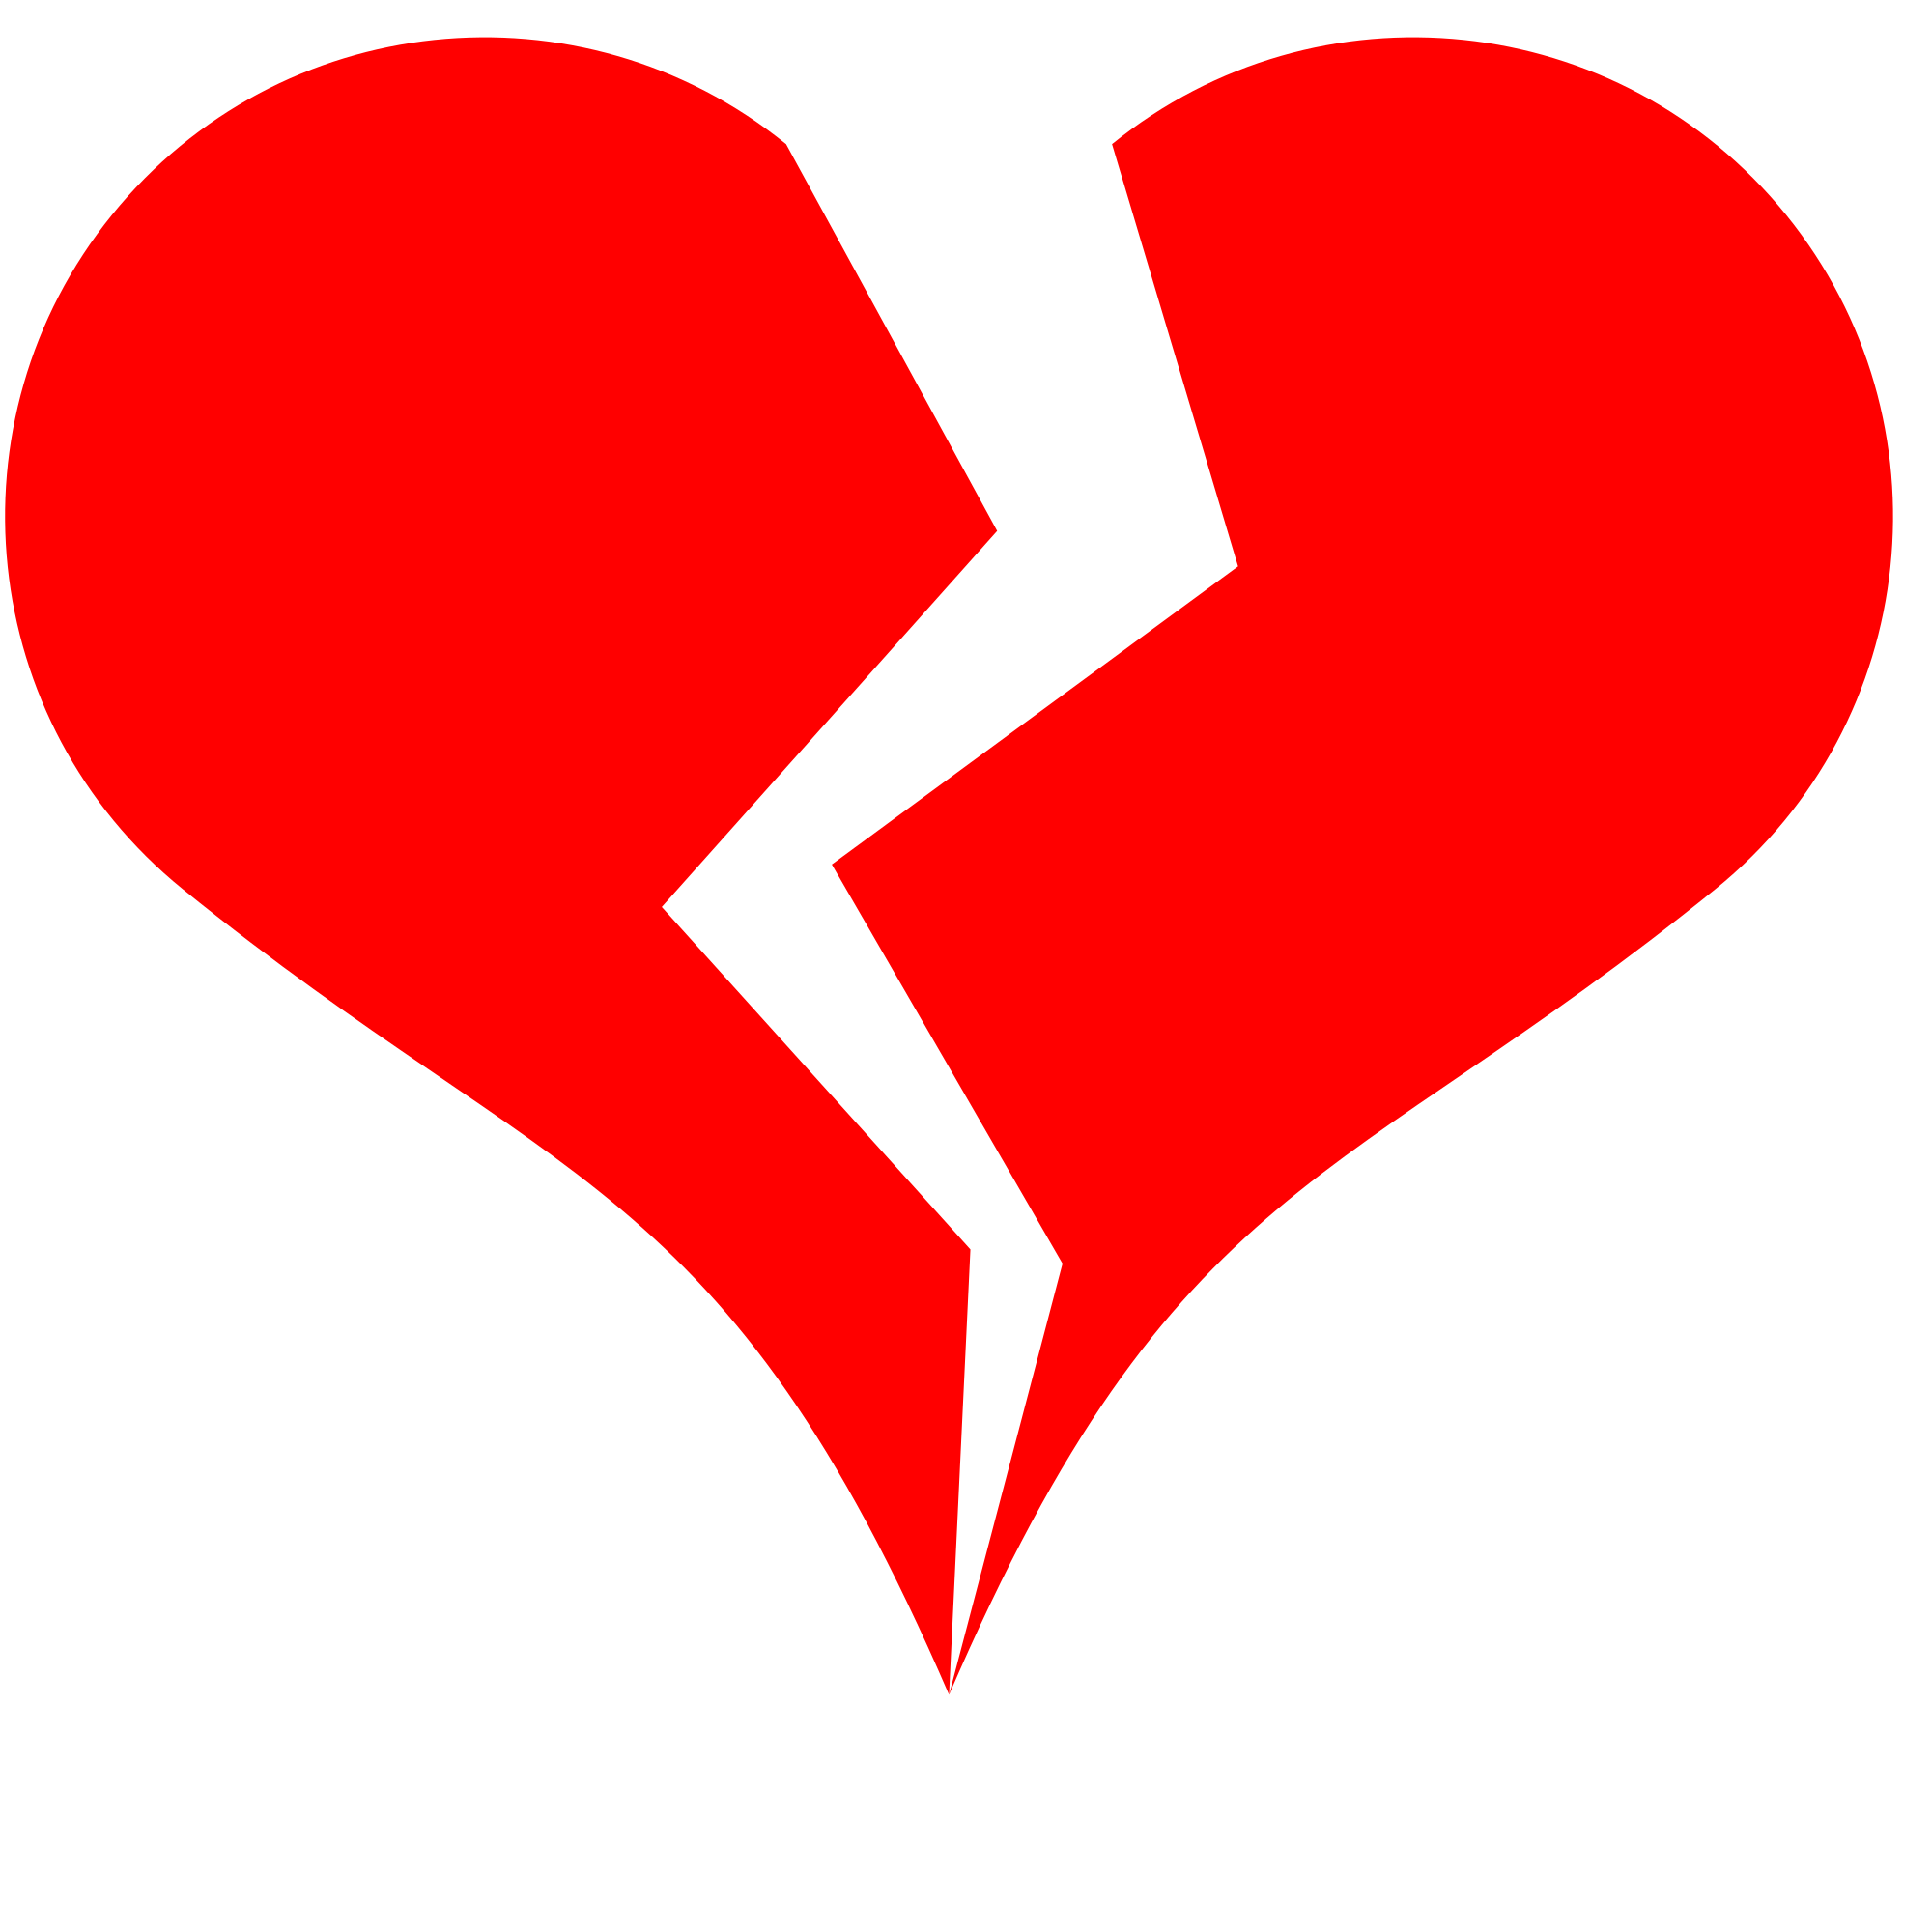 File broken wikimedia commons. Person svg heart clipart picture library stock